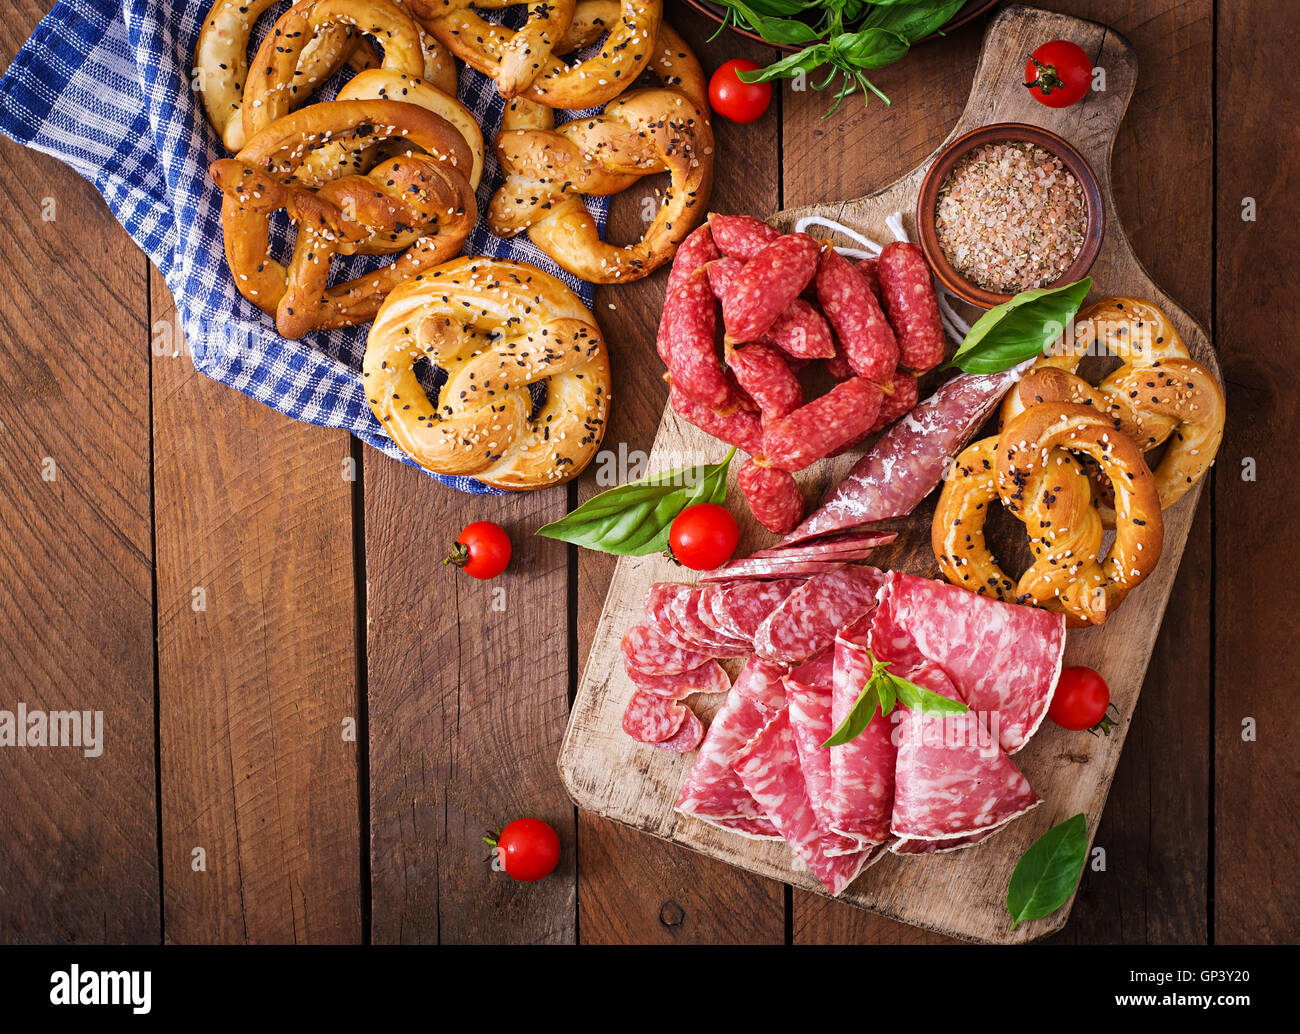 Pretzels and various sausages on wooden background. Oktoberfest. Stock Photo